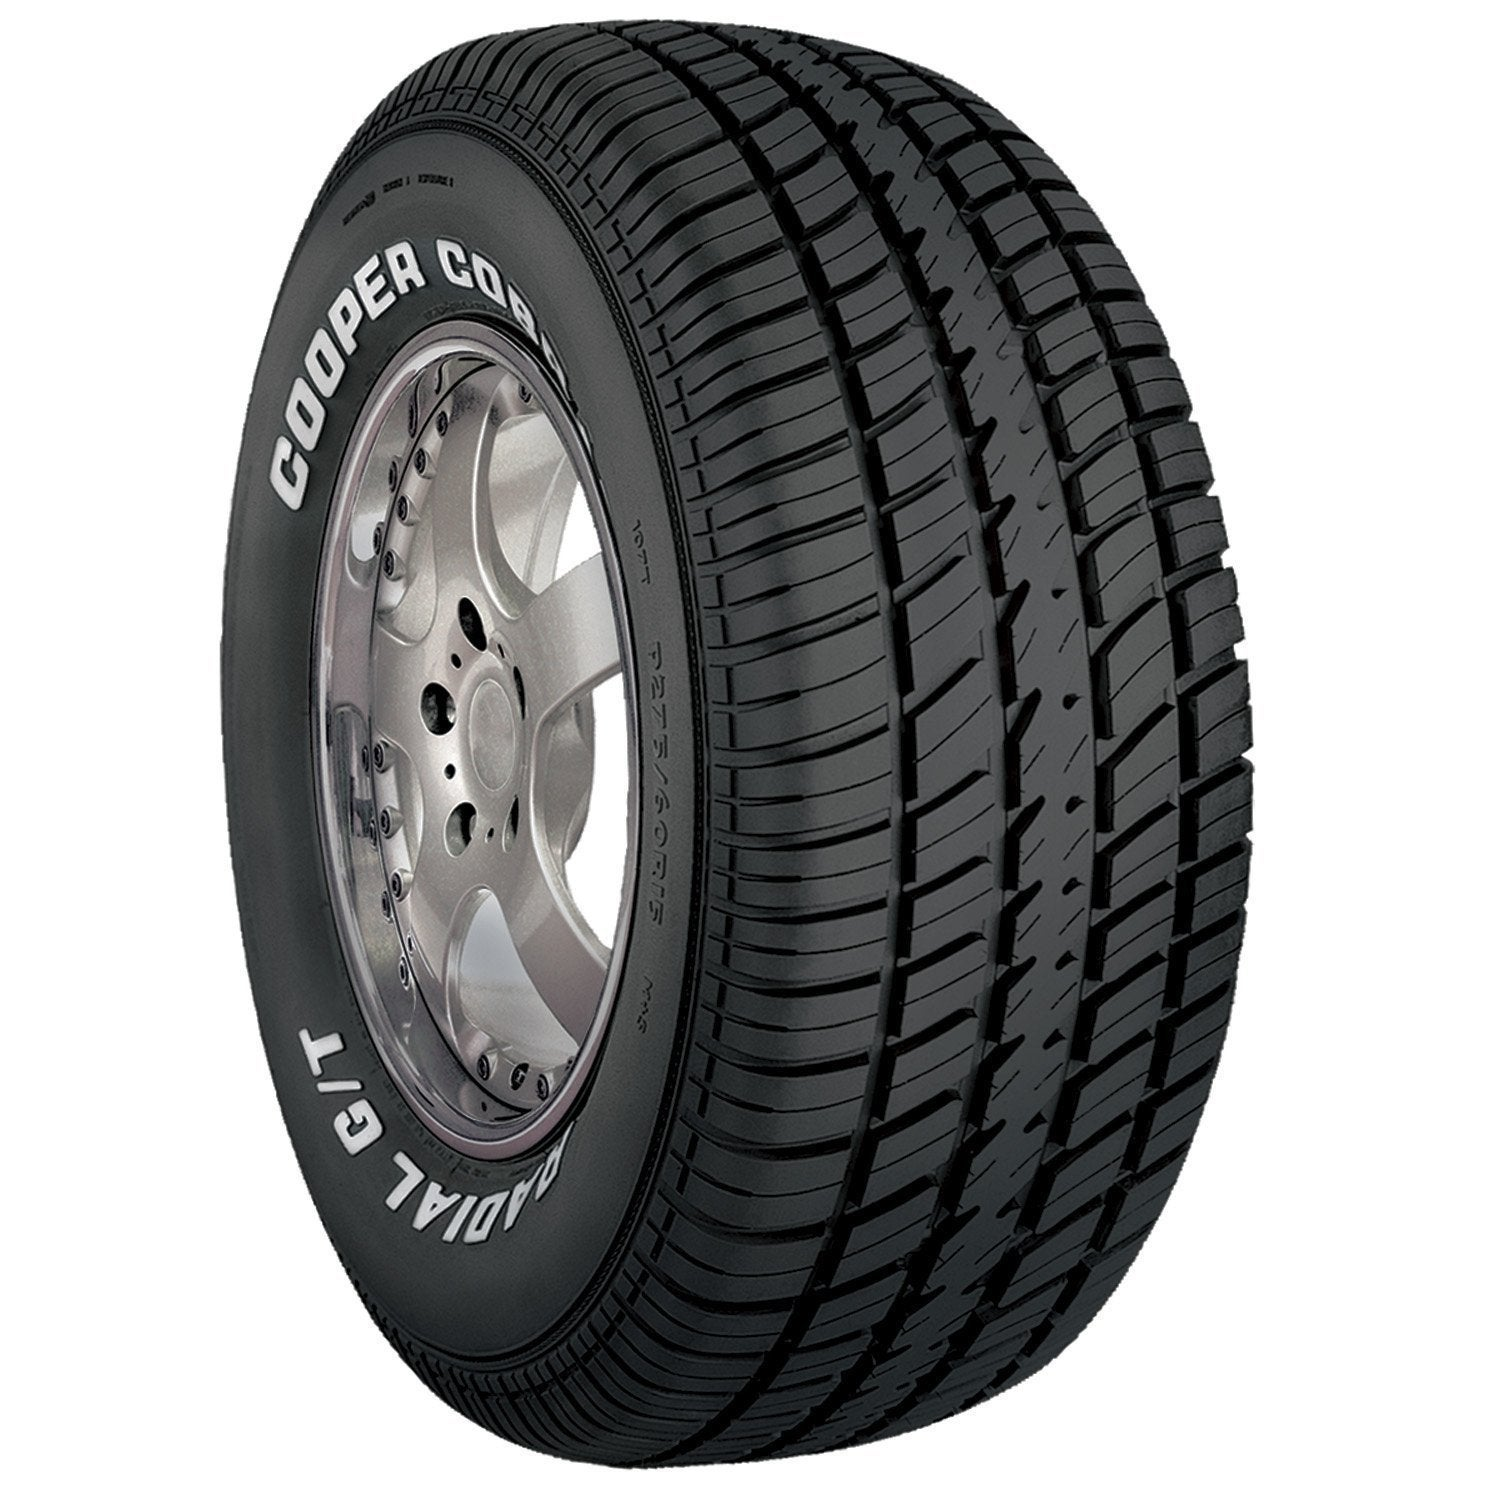 COOPER Cobra Radial G/T Classic All Season Tire - 255/60R...